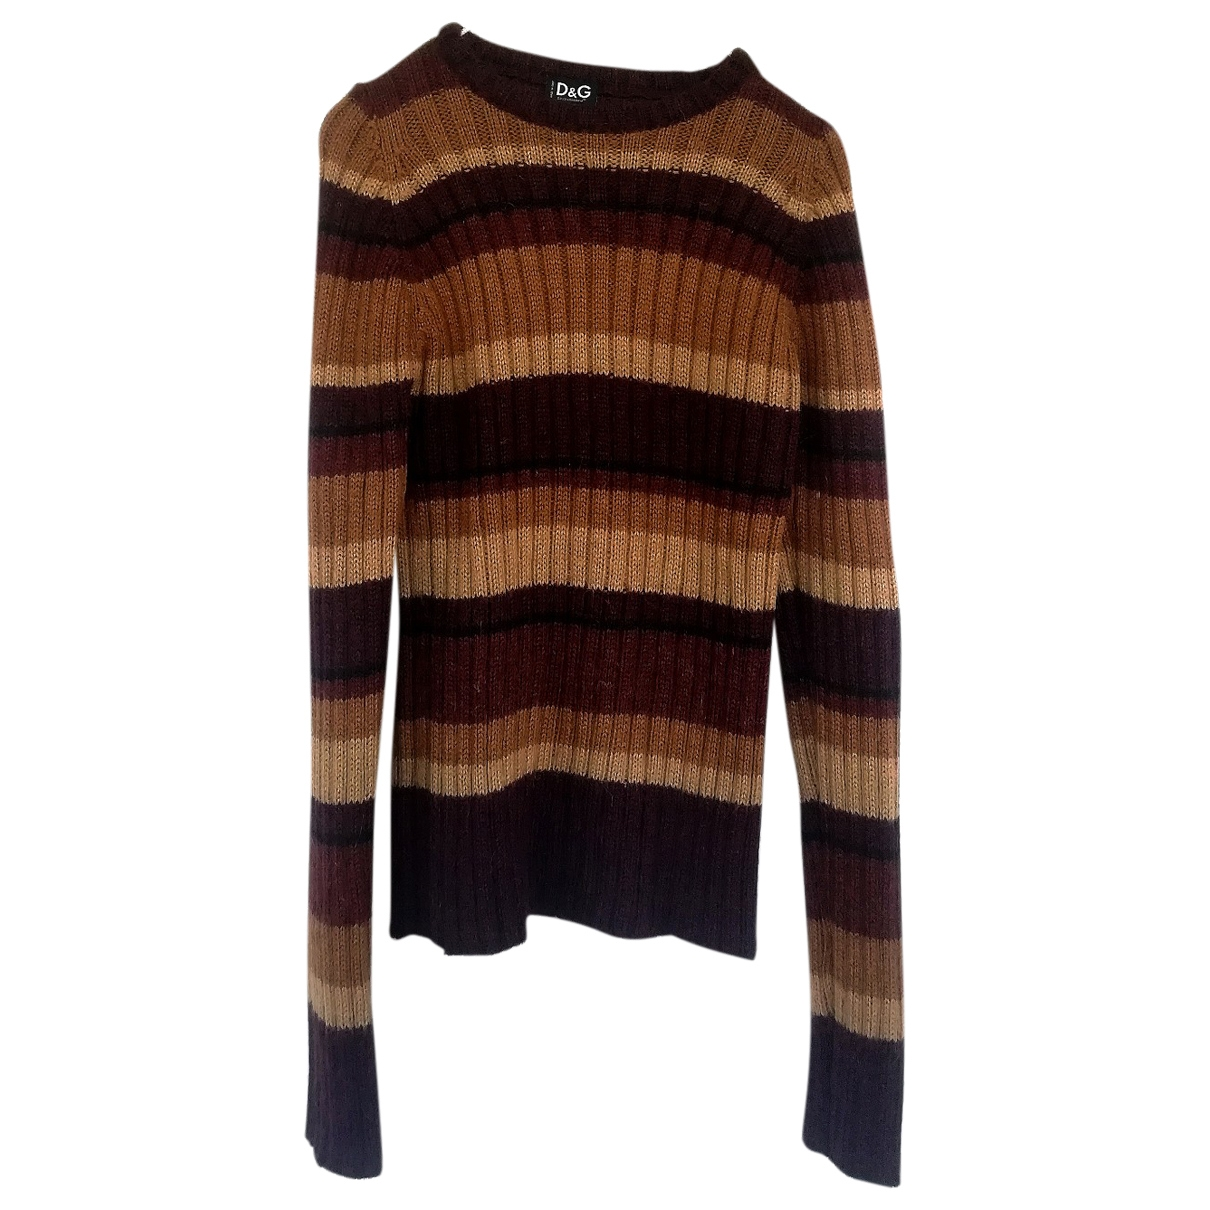 D&g \N Pullover in  Braun Polyester